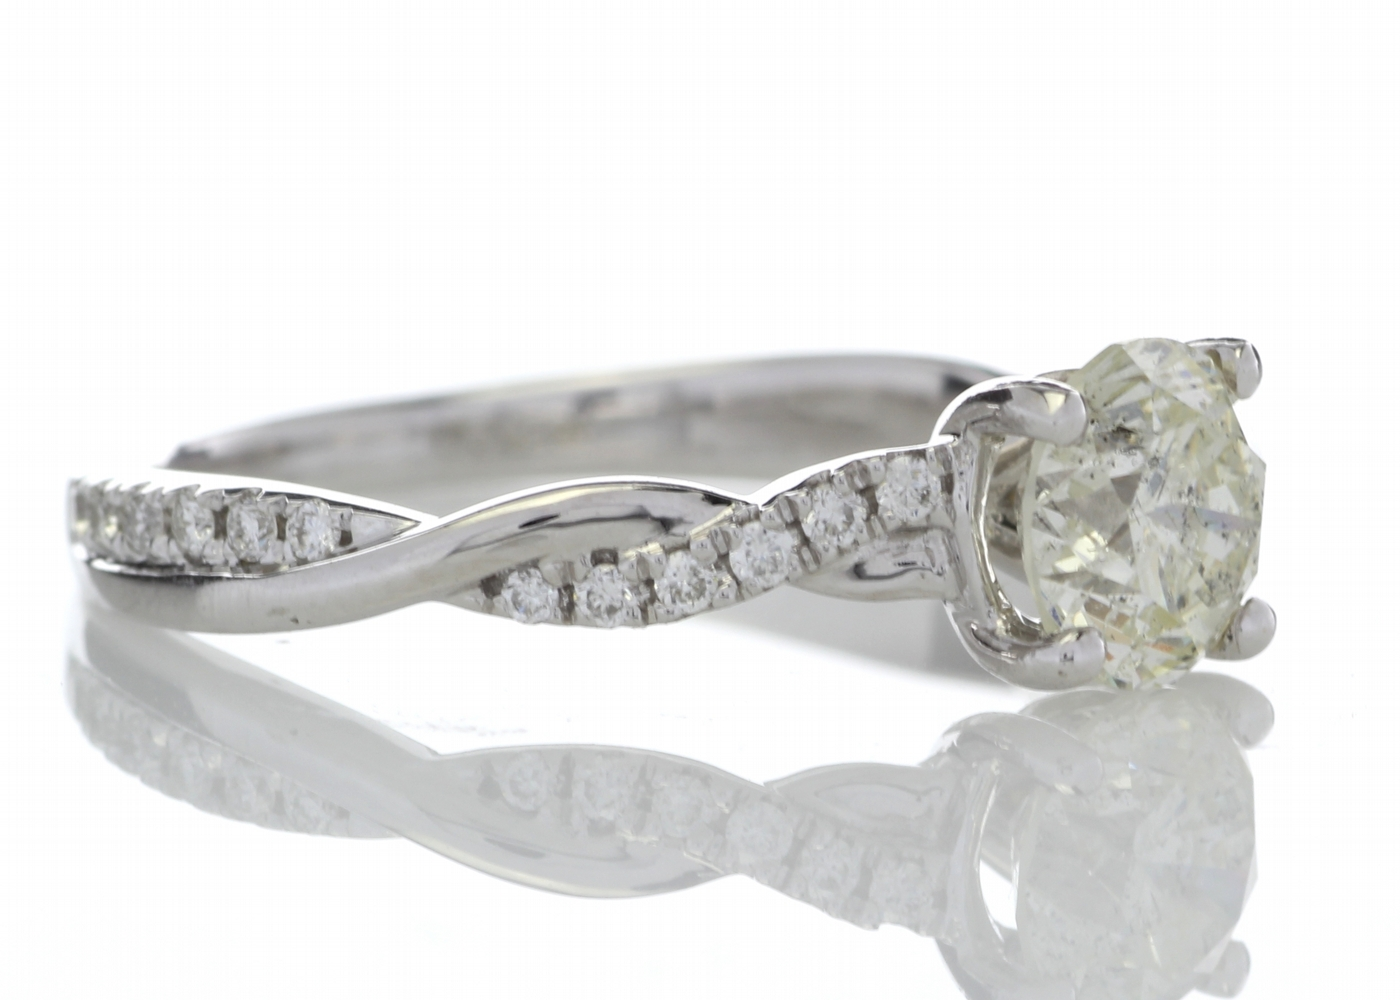 18k White Gold Diamond Ring With Waved Stone Set Shoulders 1.22 Carats - Image 4 of 5